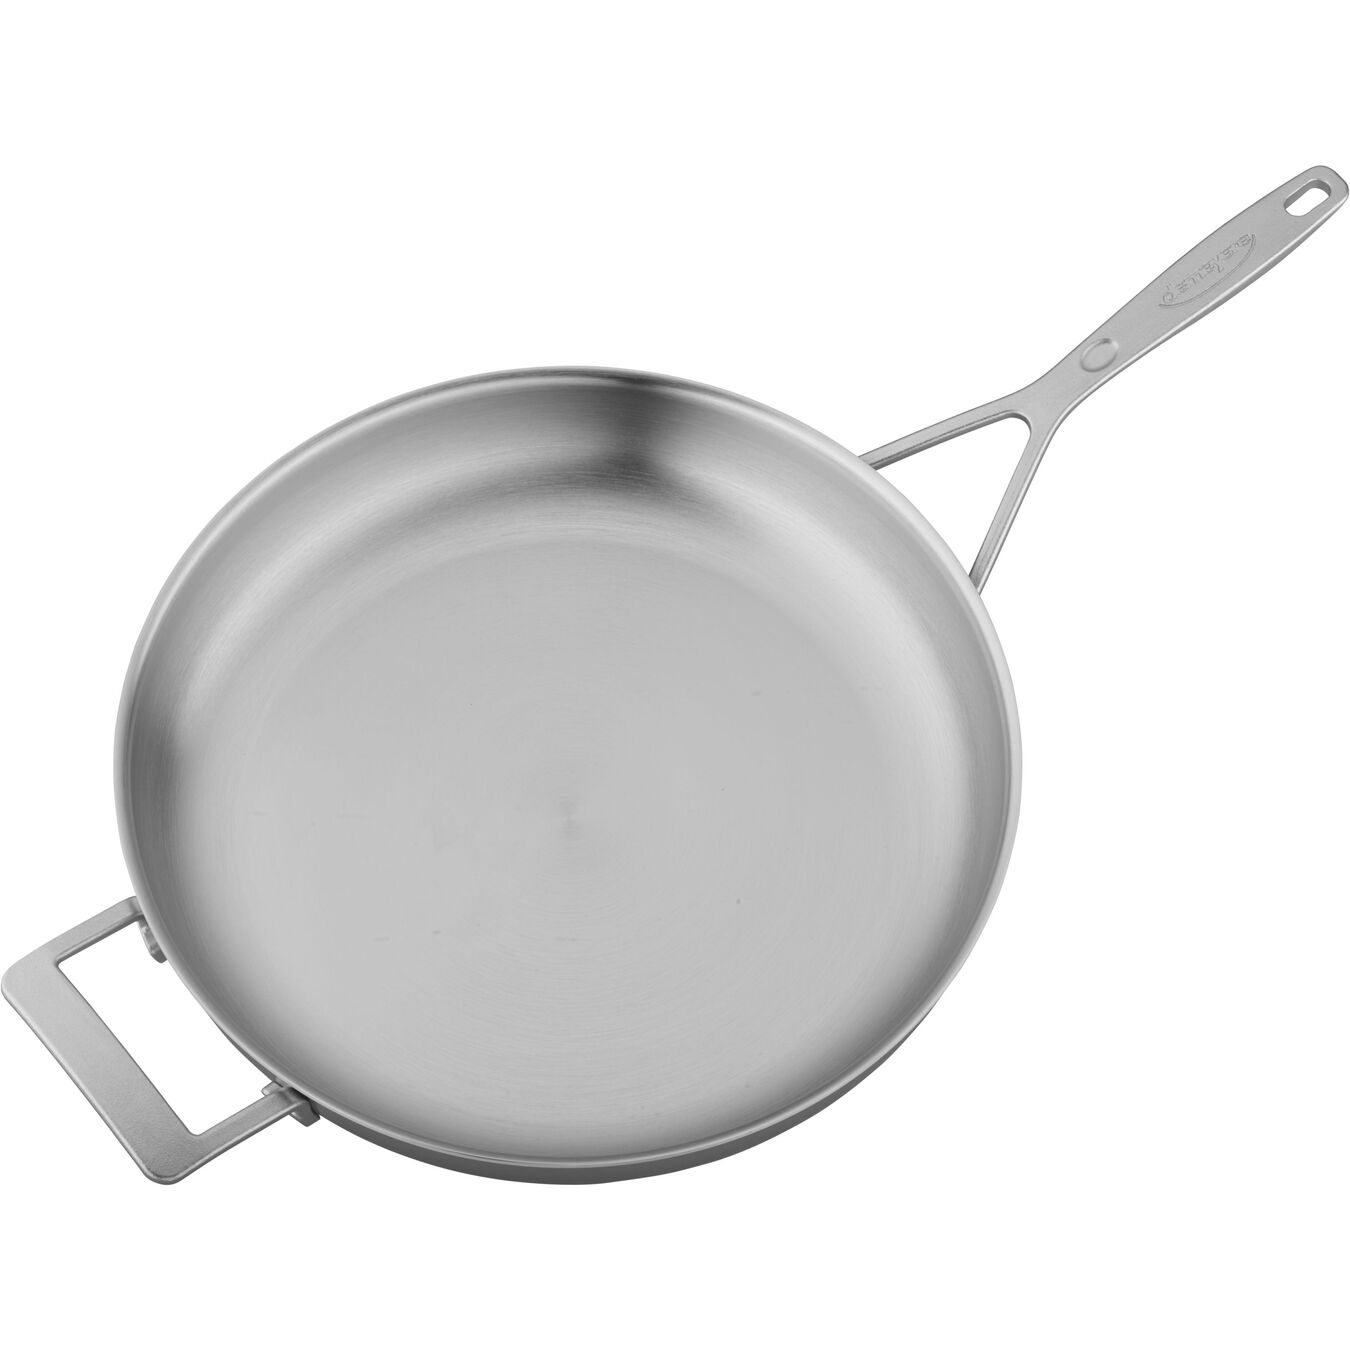 12.5-inch, 18/10 Stainless Steel, Frying pan,,large 4